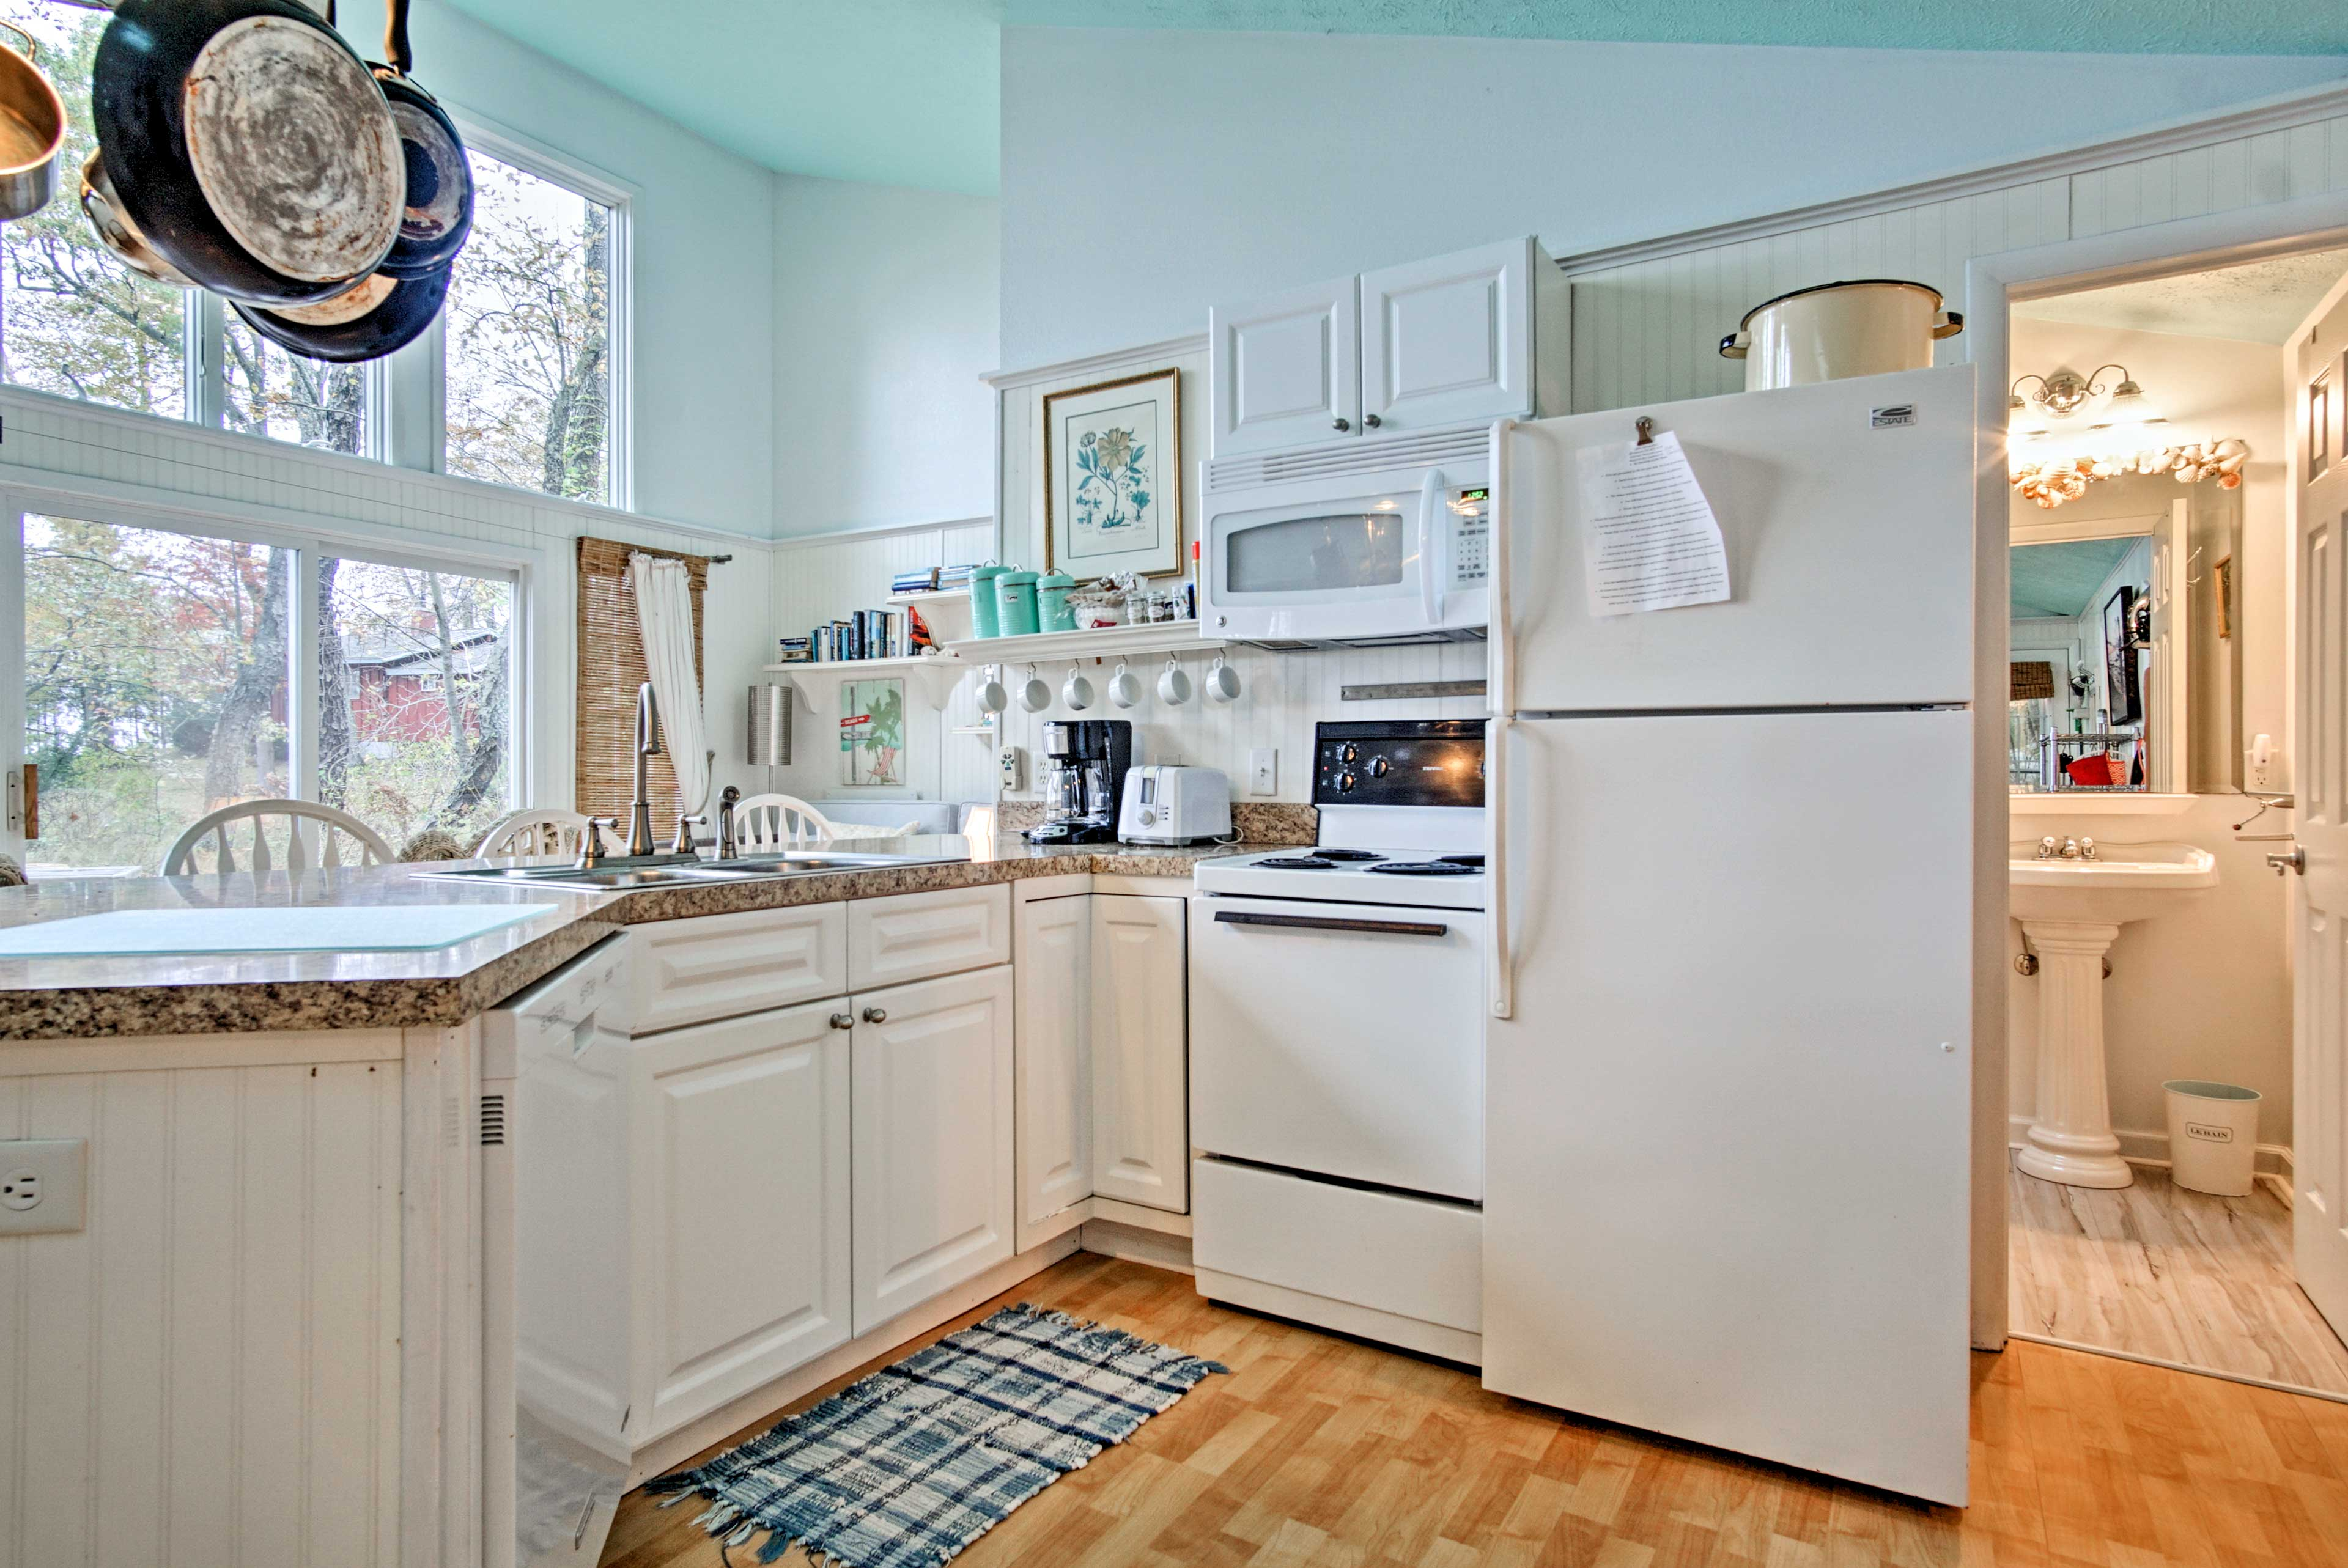 The fully equipped kitchen features everything you need to prepare a home-cooked meal.